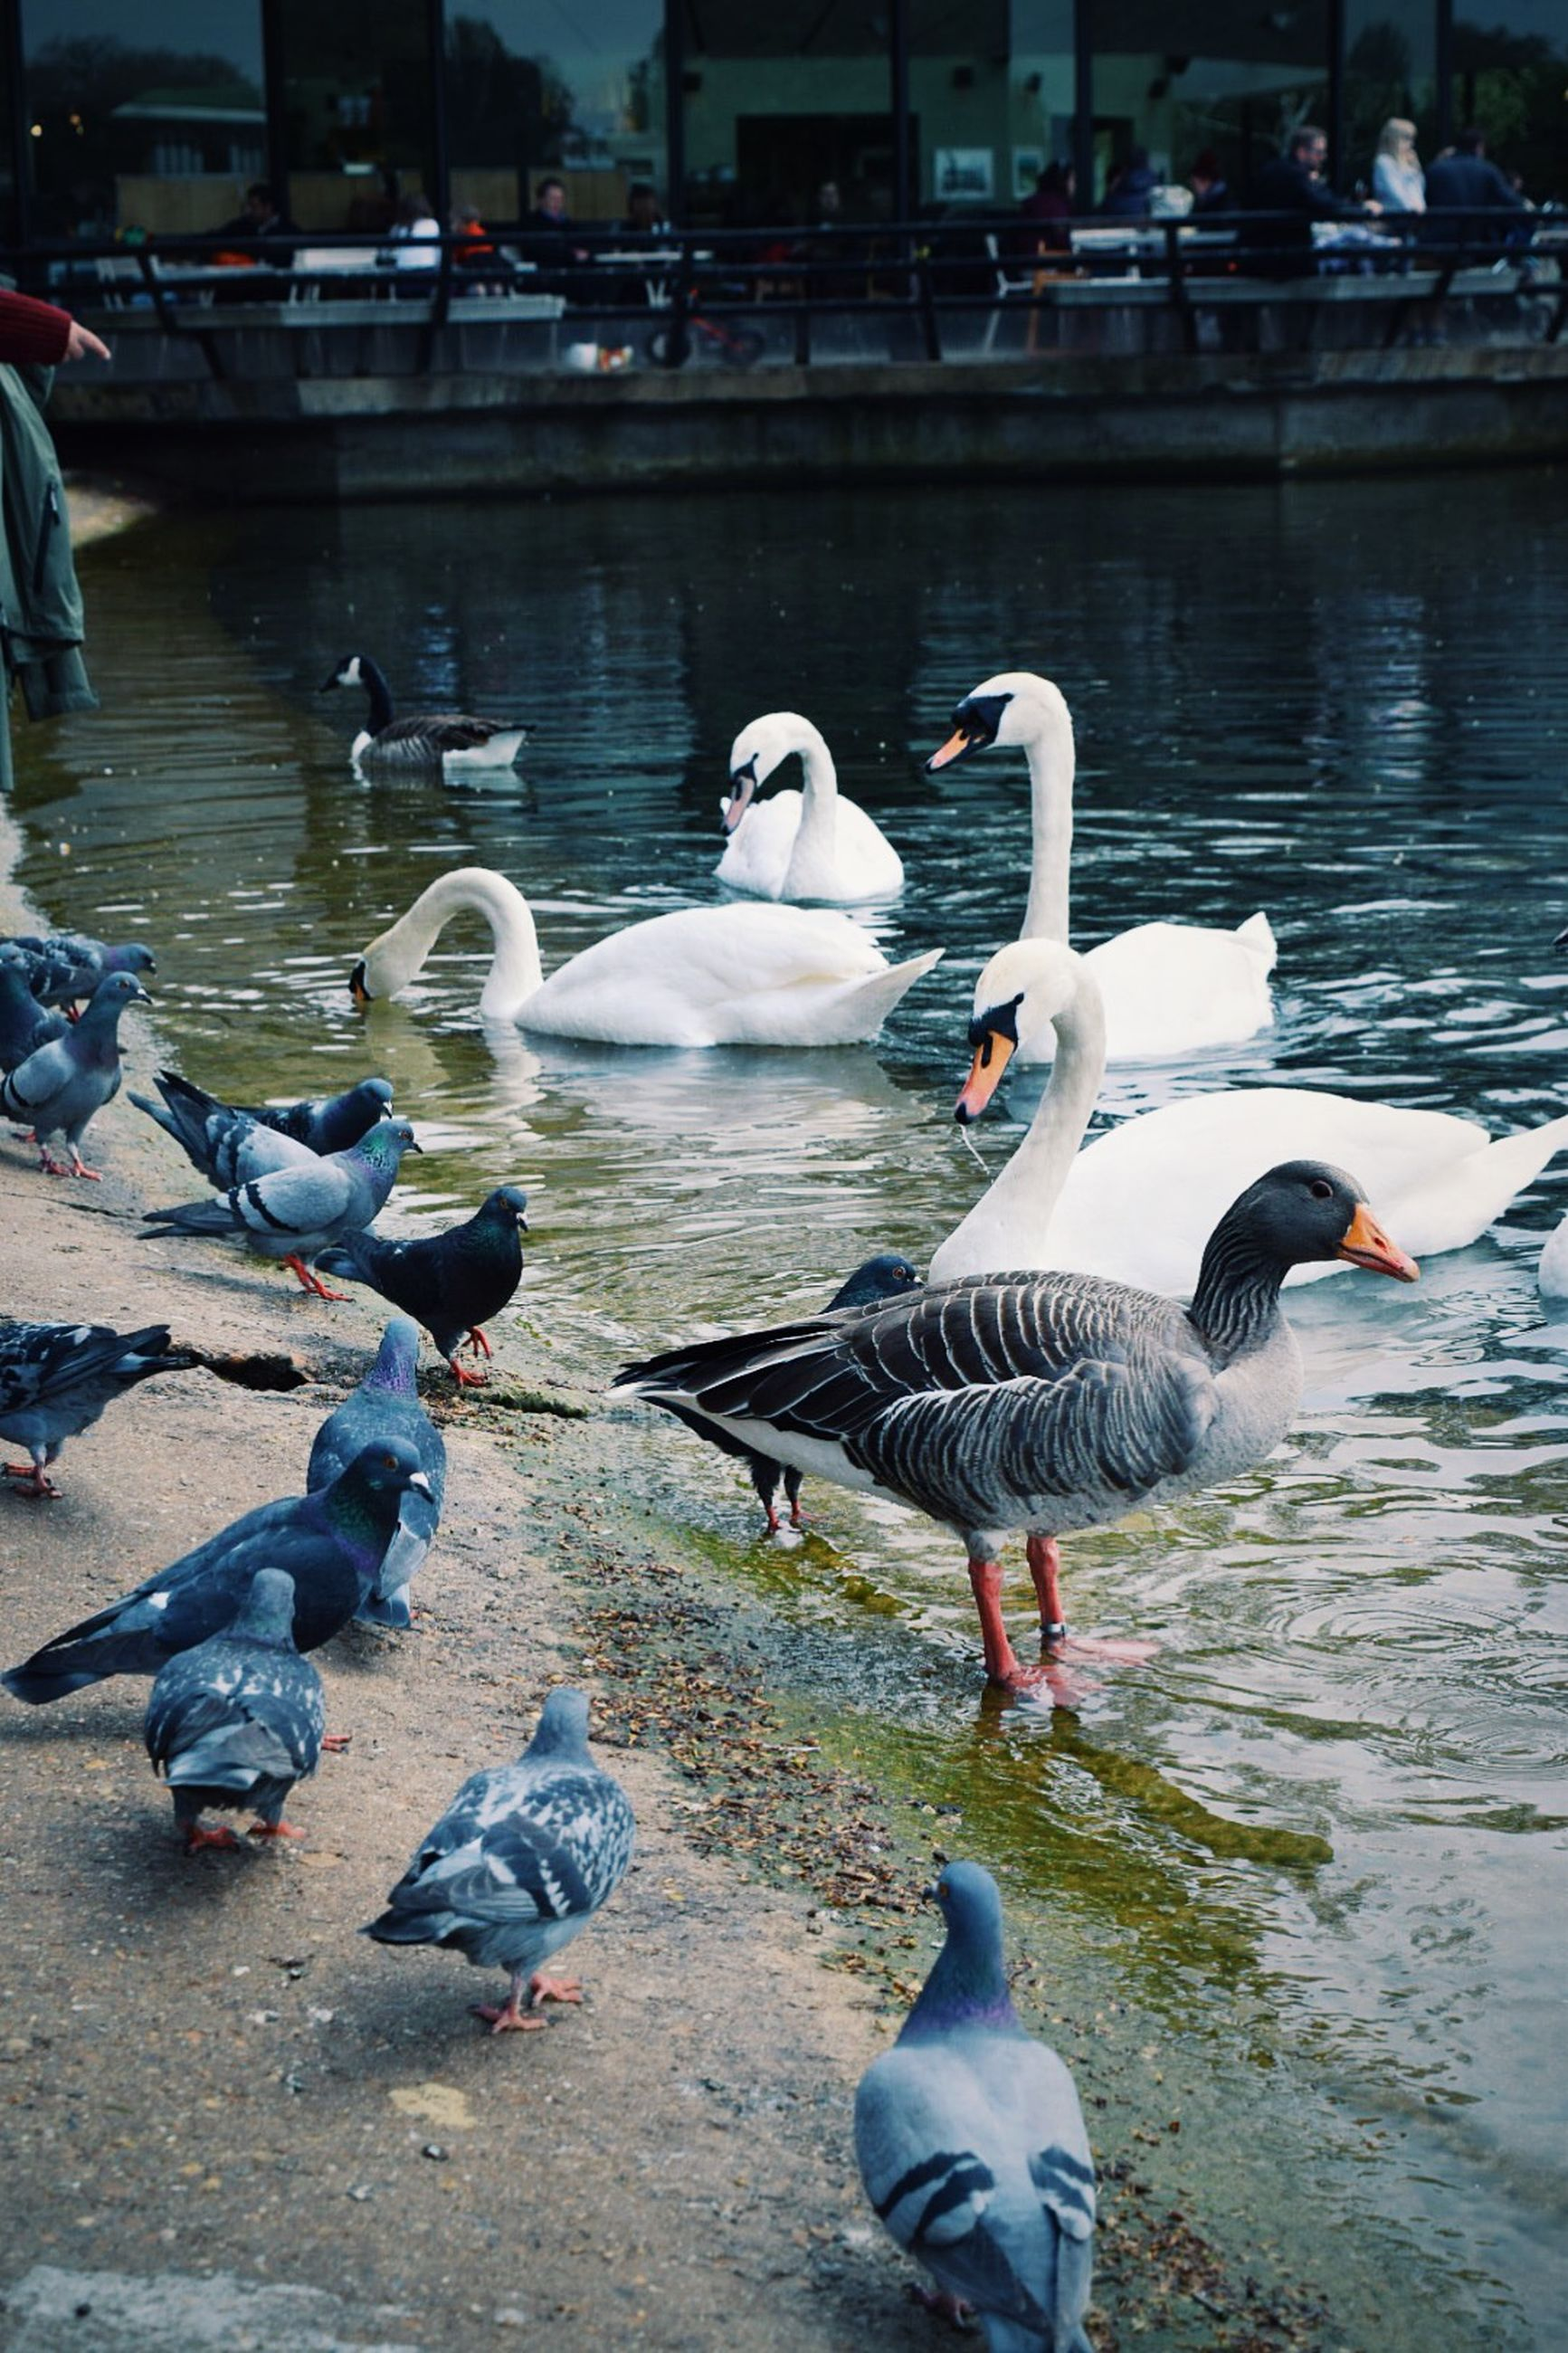 bird, animal themes, animals in the wild, water, wildlife, lake, flock of birds, duck, medium group of animals, swan, seagull, water bird, nature, reflection, togetherness, river, swimming, rippled, day